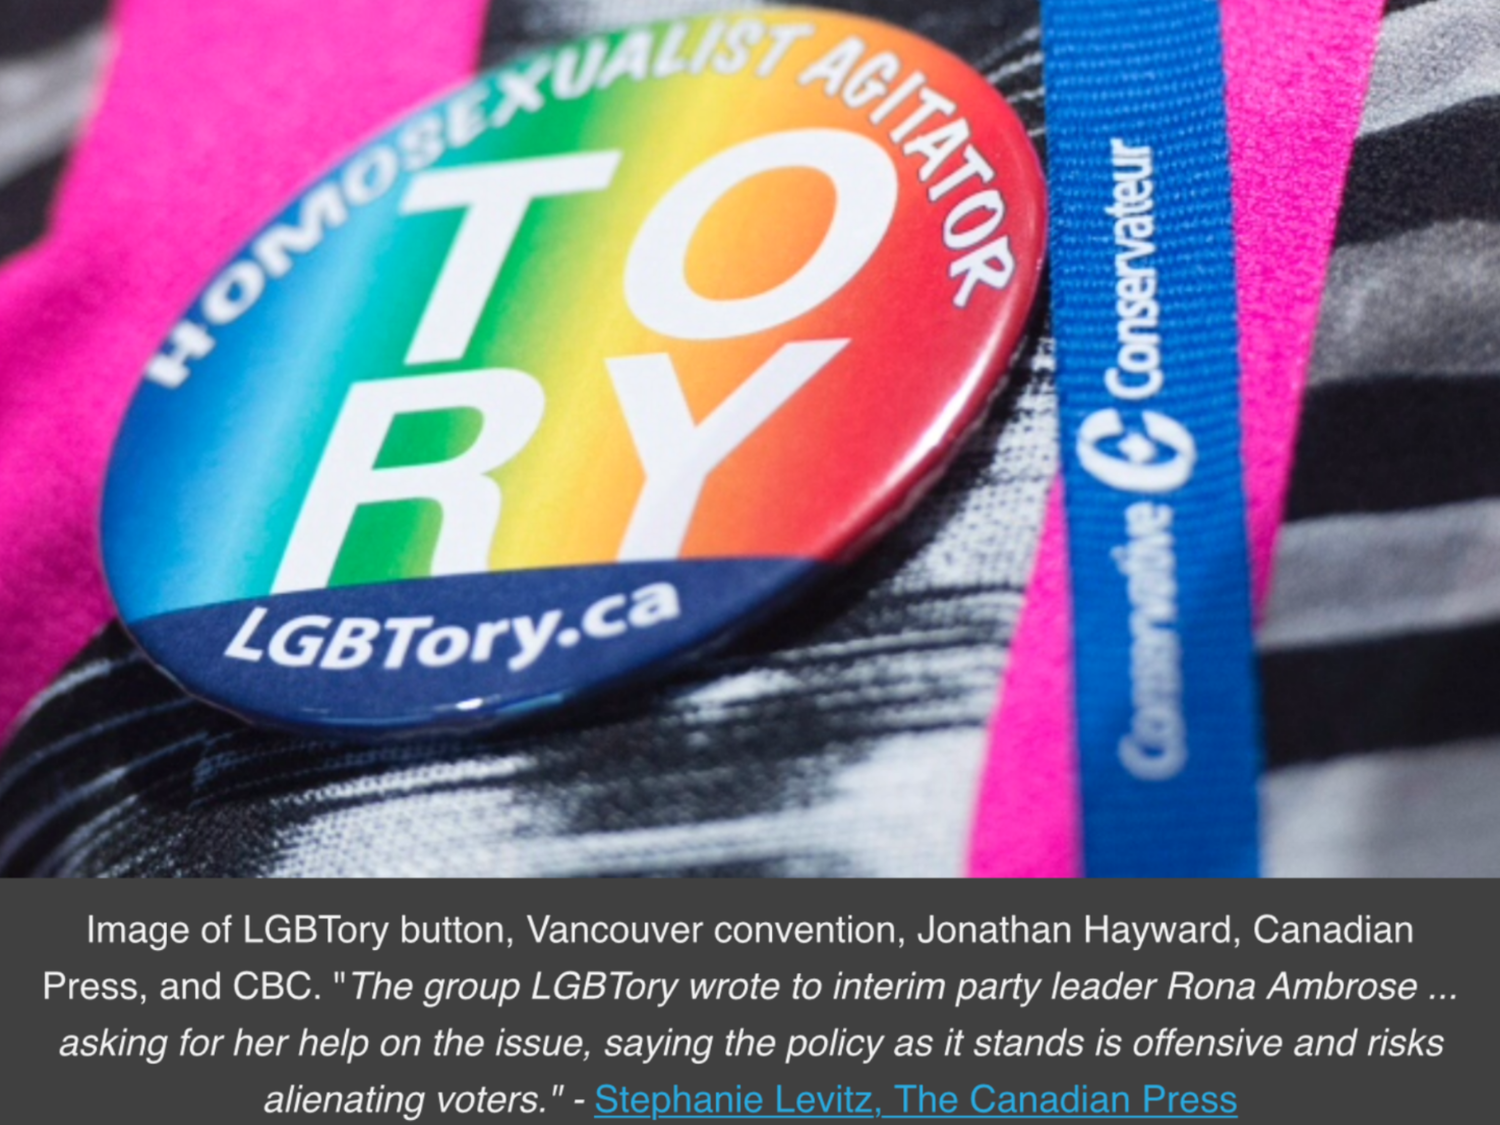 Alberta Conservatives back removal of same-sex ban from party policy - Stephanie Levitz, The Canadian Press